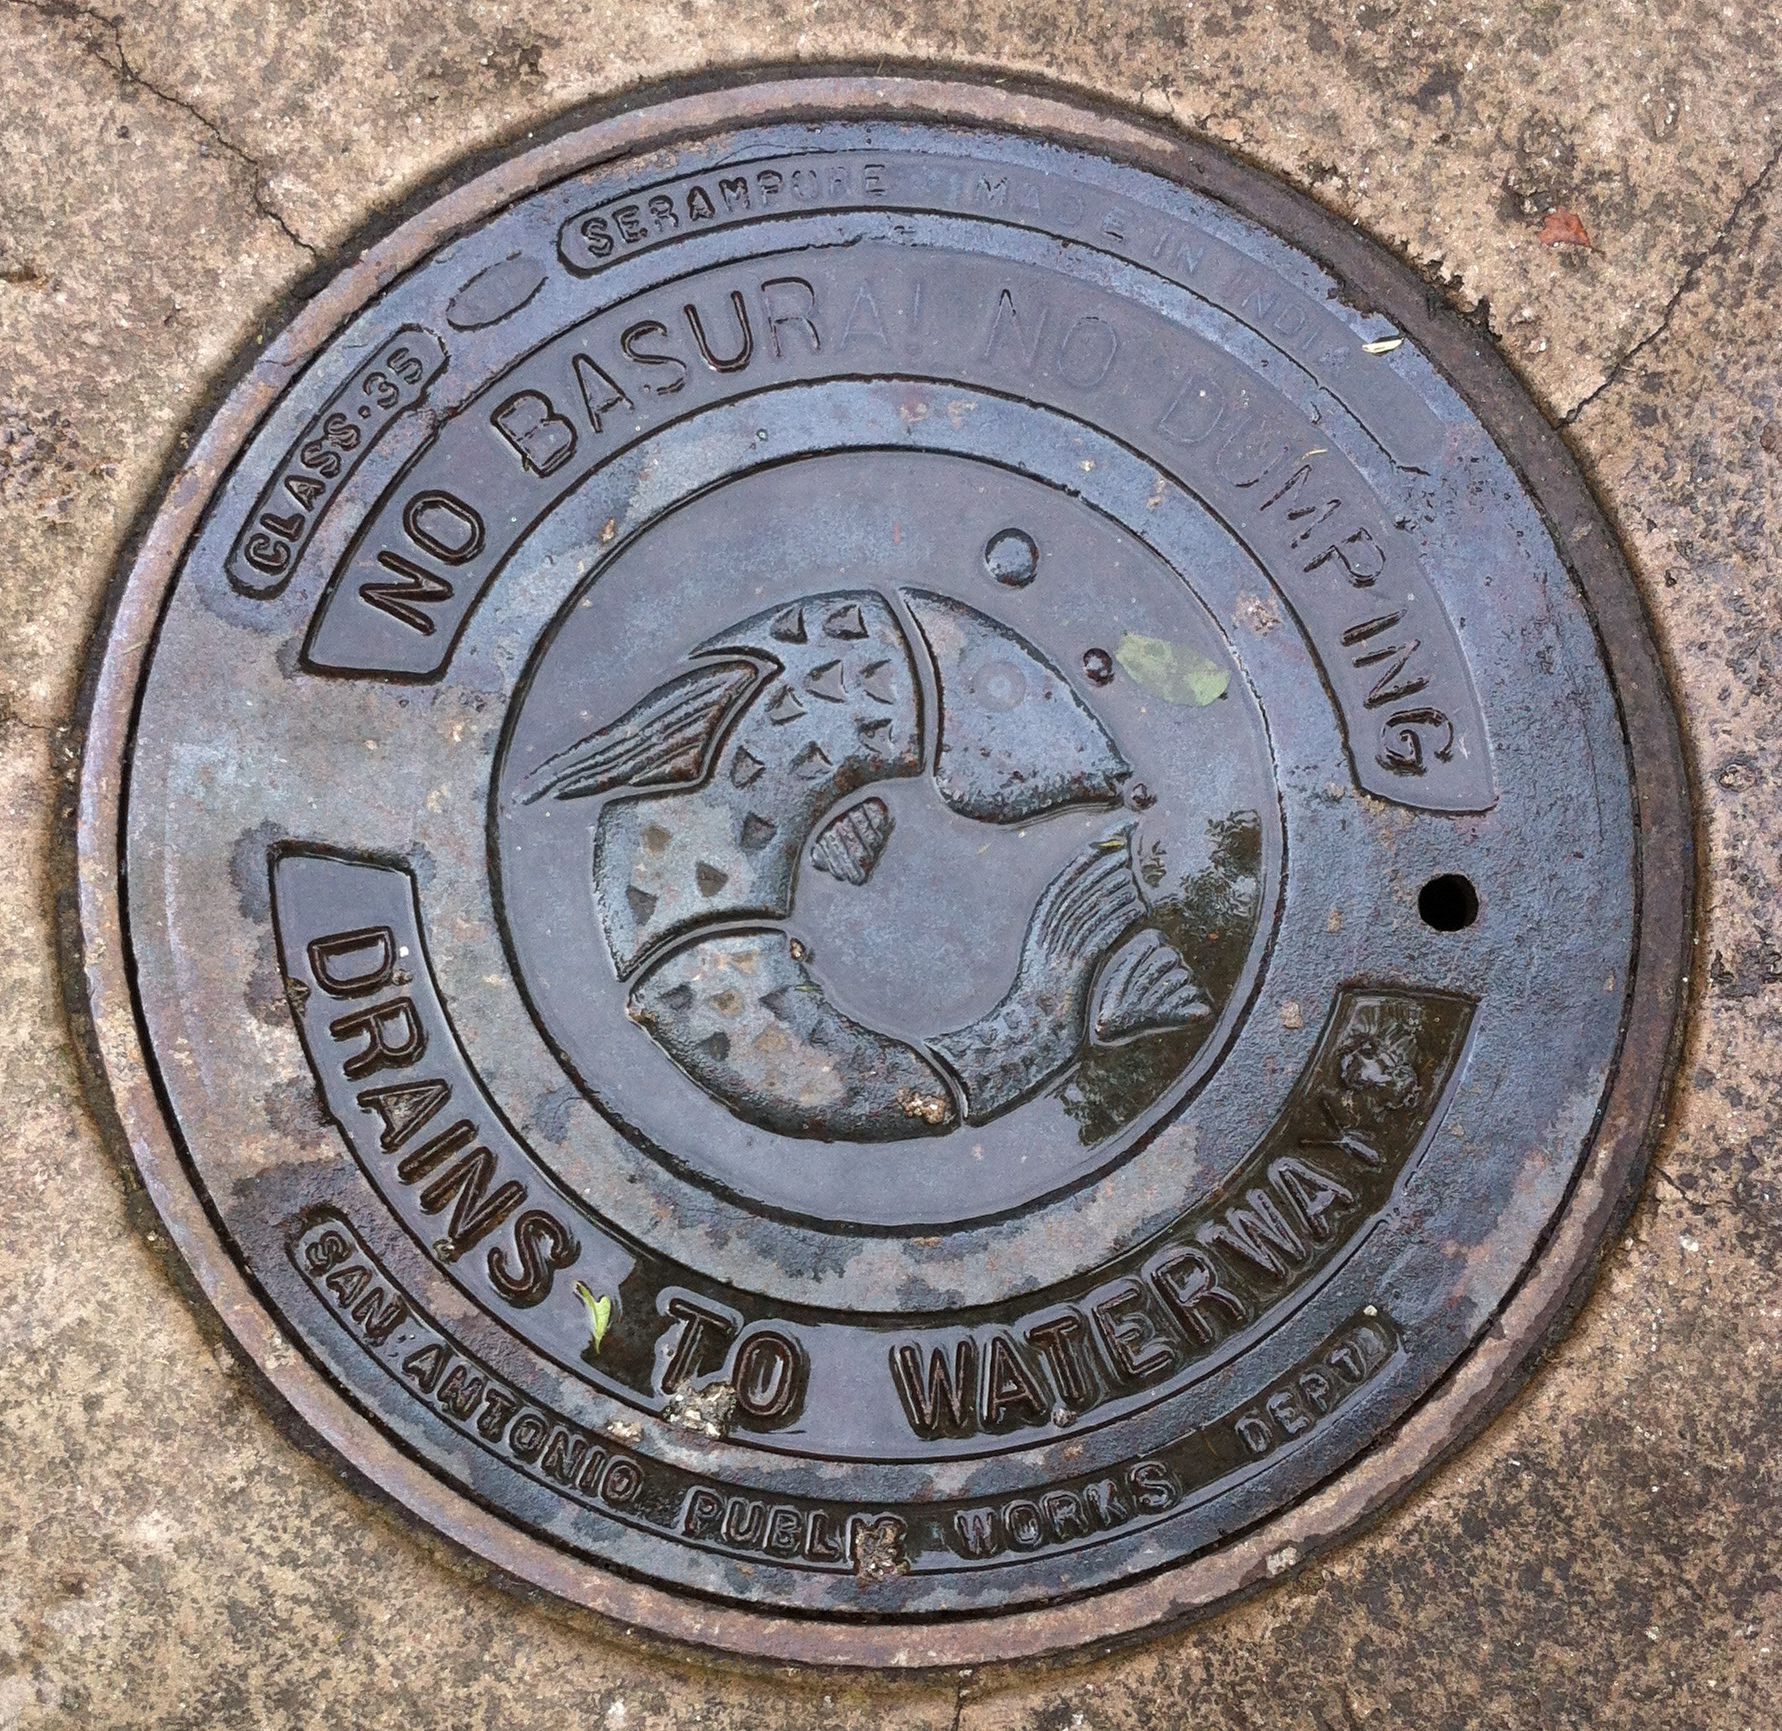 Bilingual manhole cover at San Antonio, TX zoo